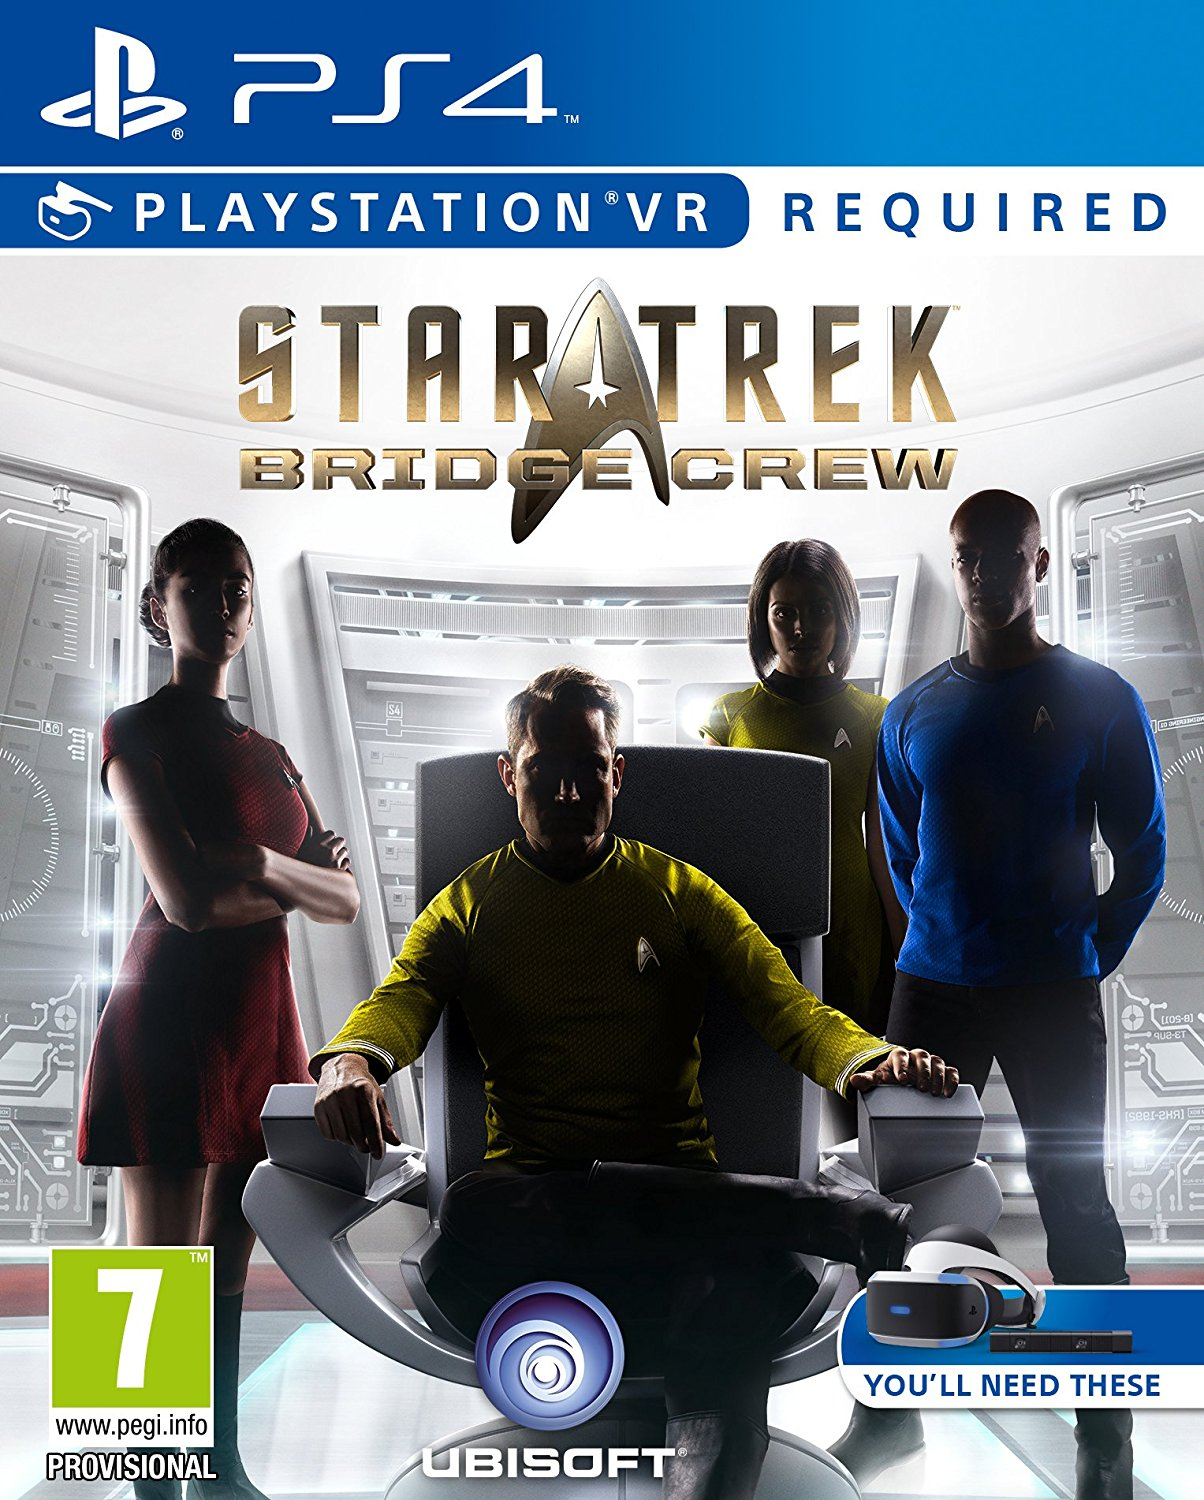 By Its Cover: Star Trek: Bridge Simulator VR